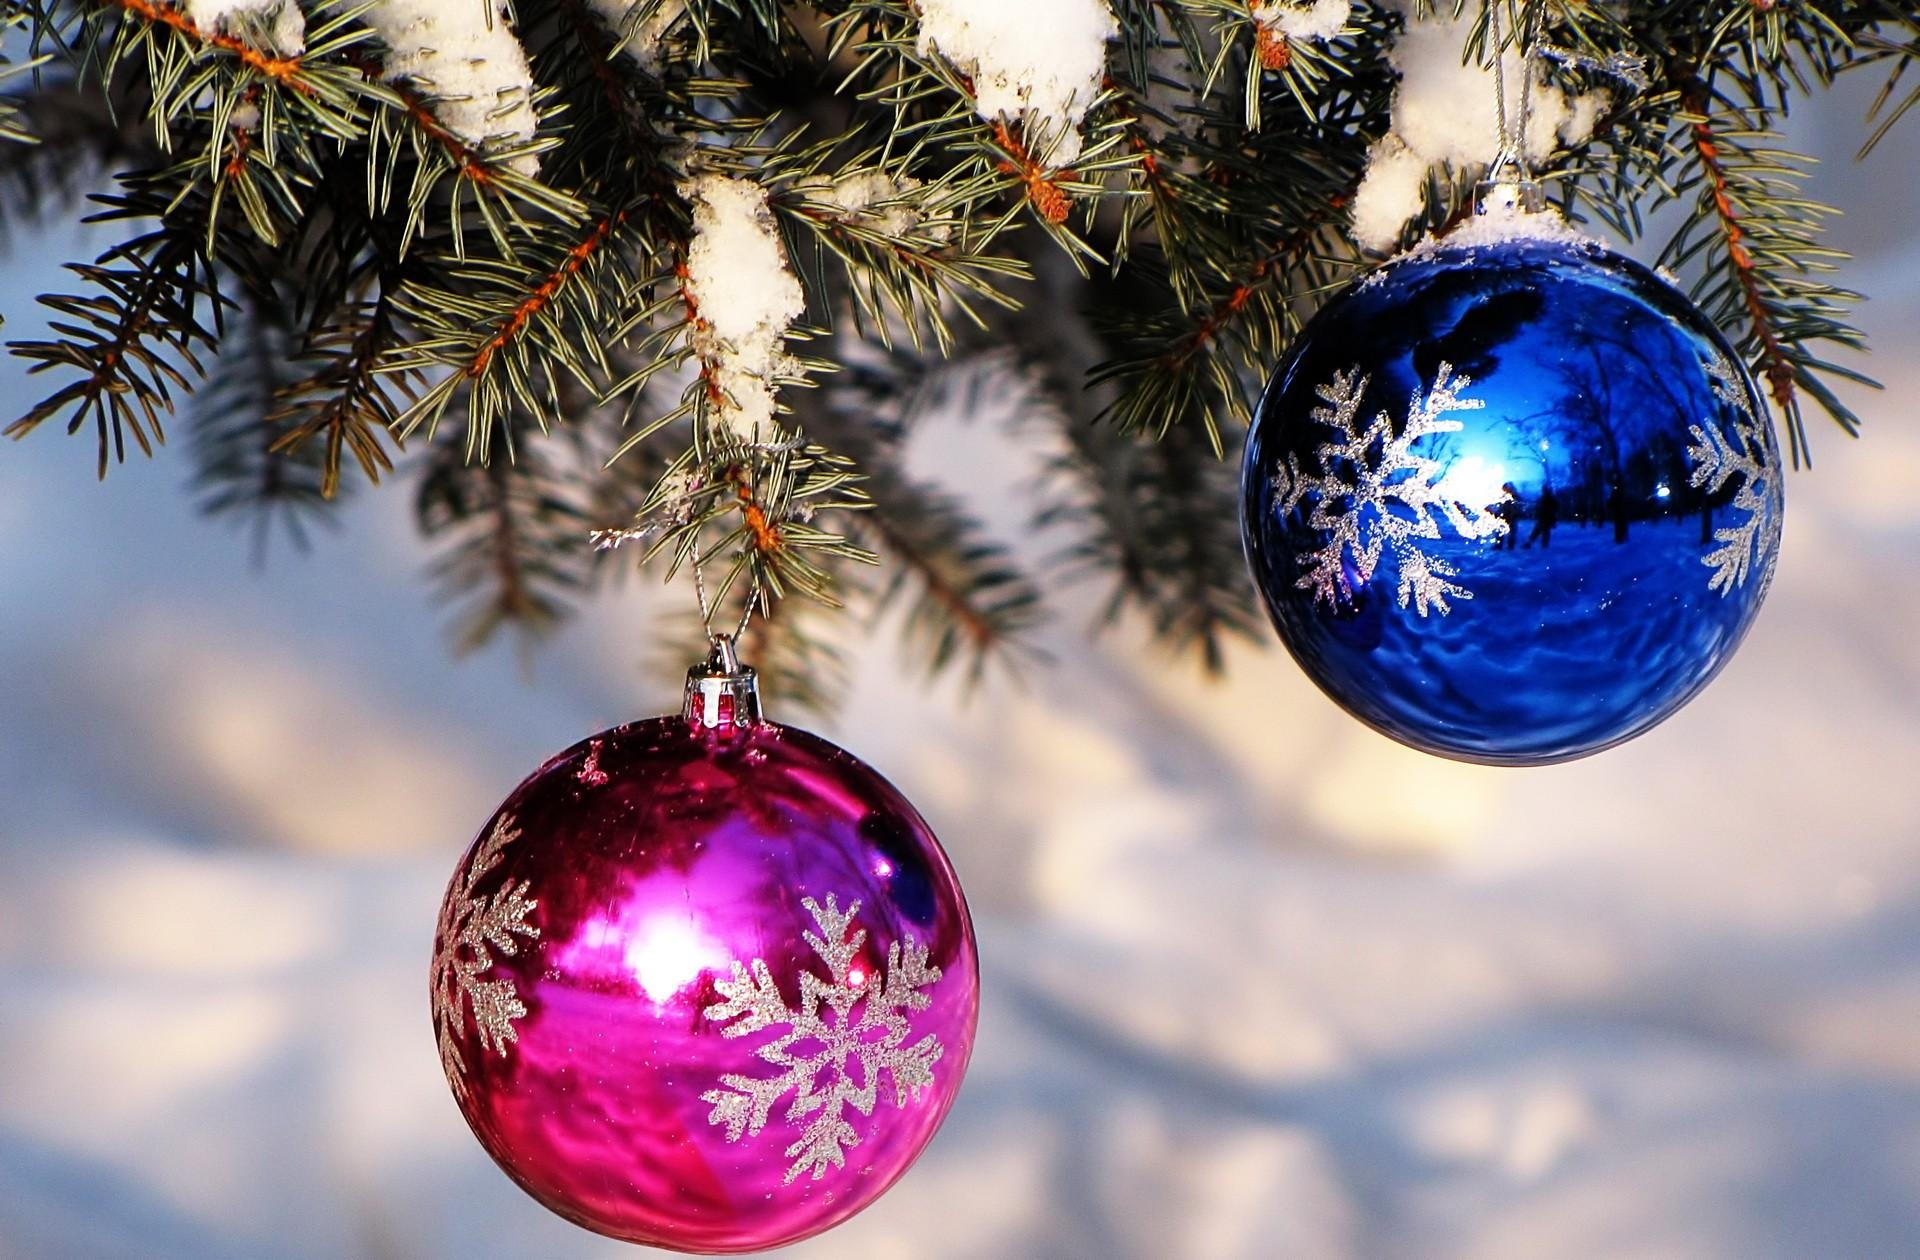 148154 Screensavers and Wallpapers Balls for phone. Download Holidays, Pink, Snow, Spruce, Fir, Christmas Decorations, Christmas Tree Toys, Balls pictures for free